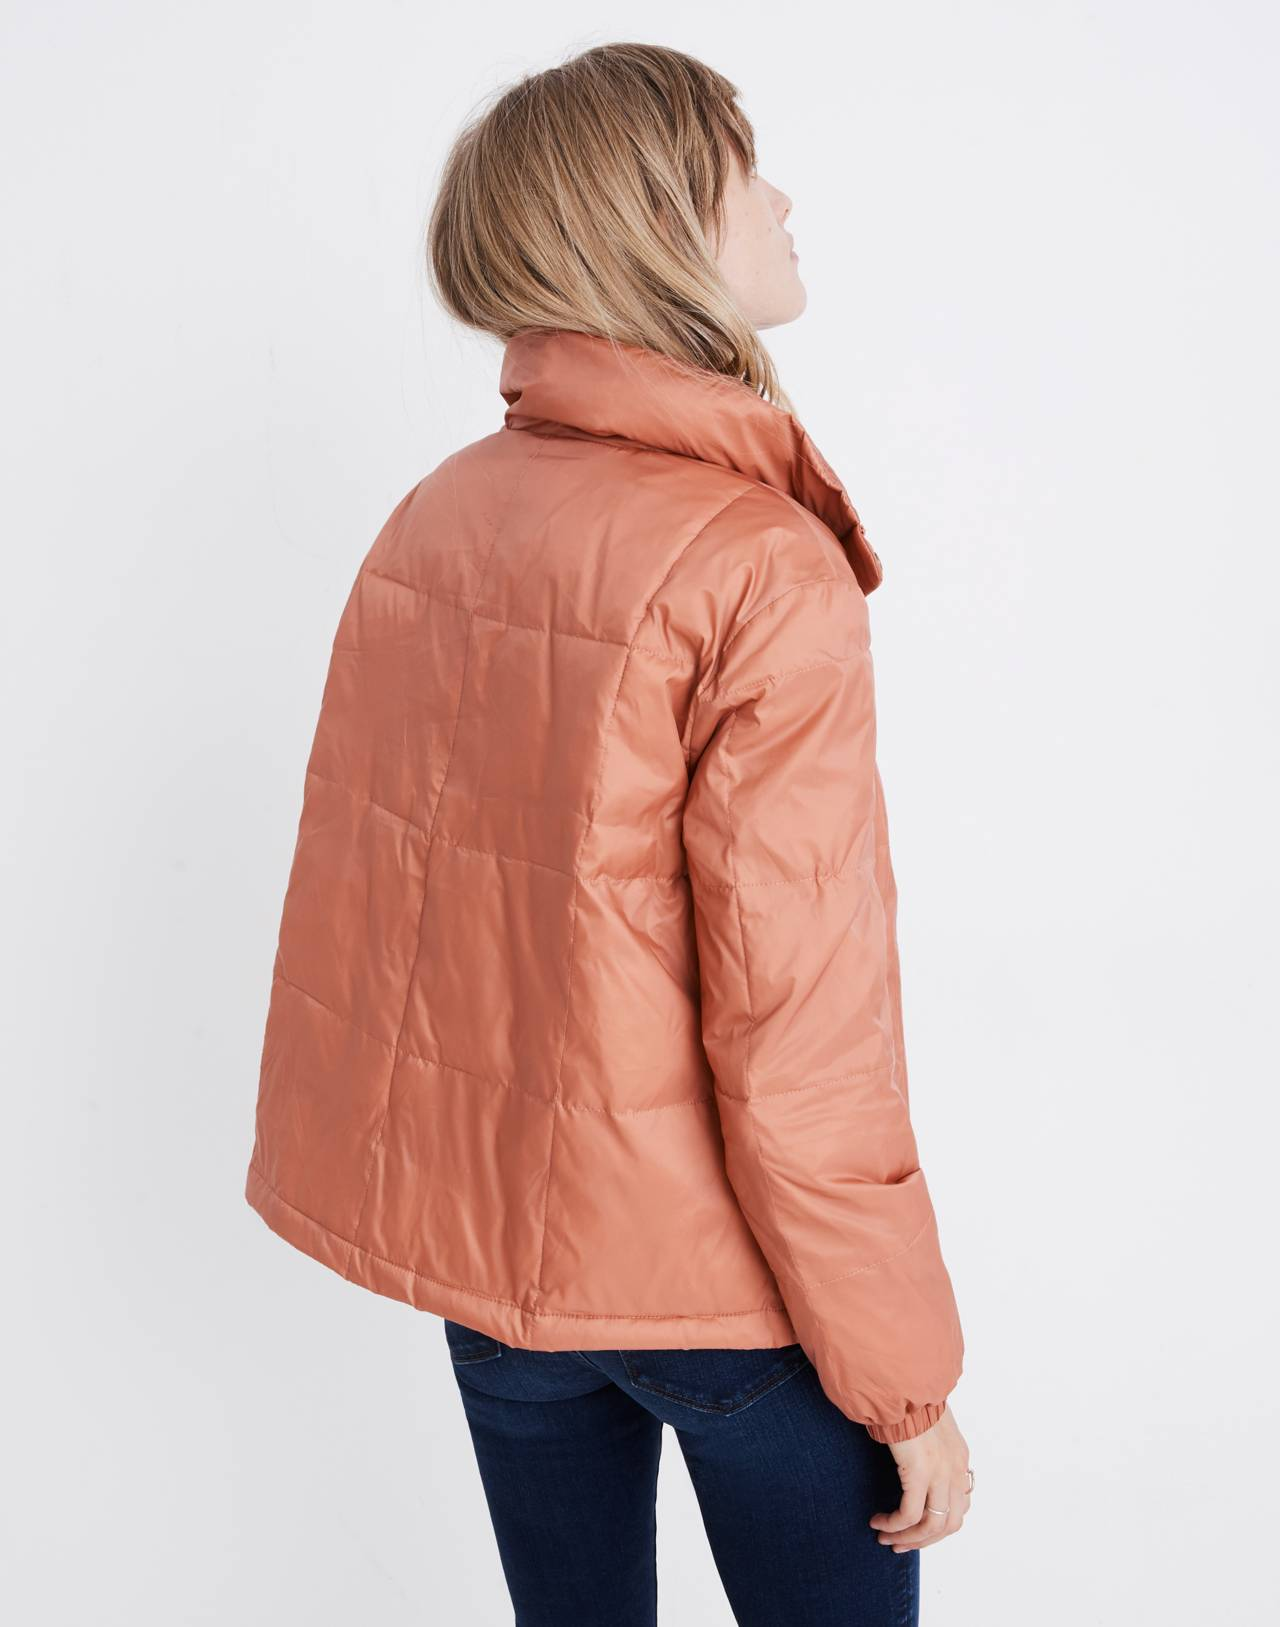 Travel Buddy Packable Puffer Jacket in sweet dahlia image 2